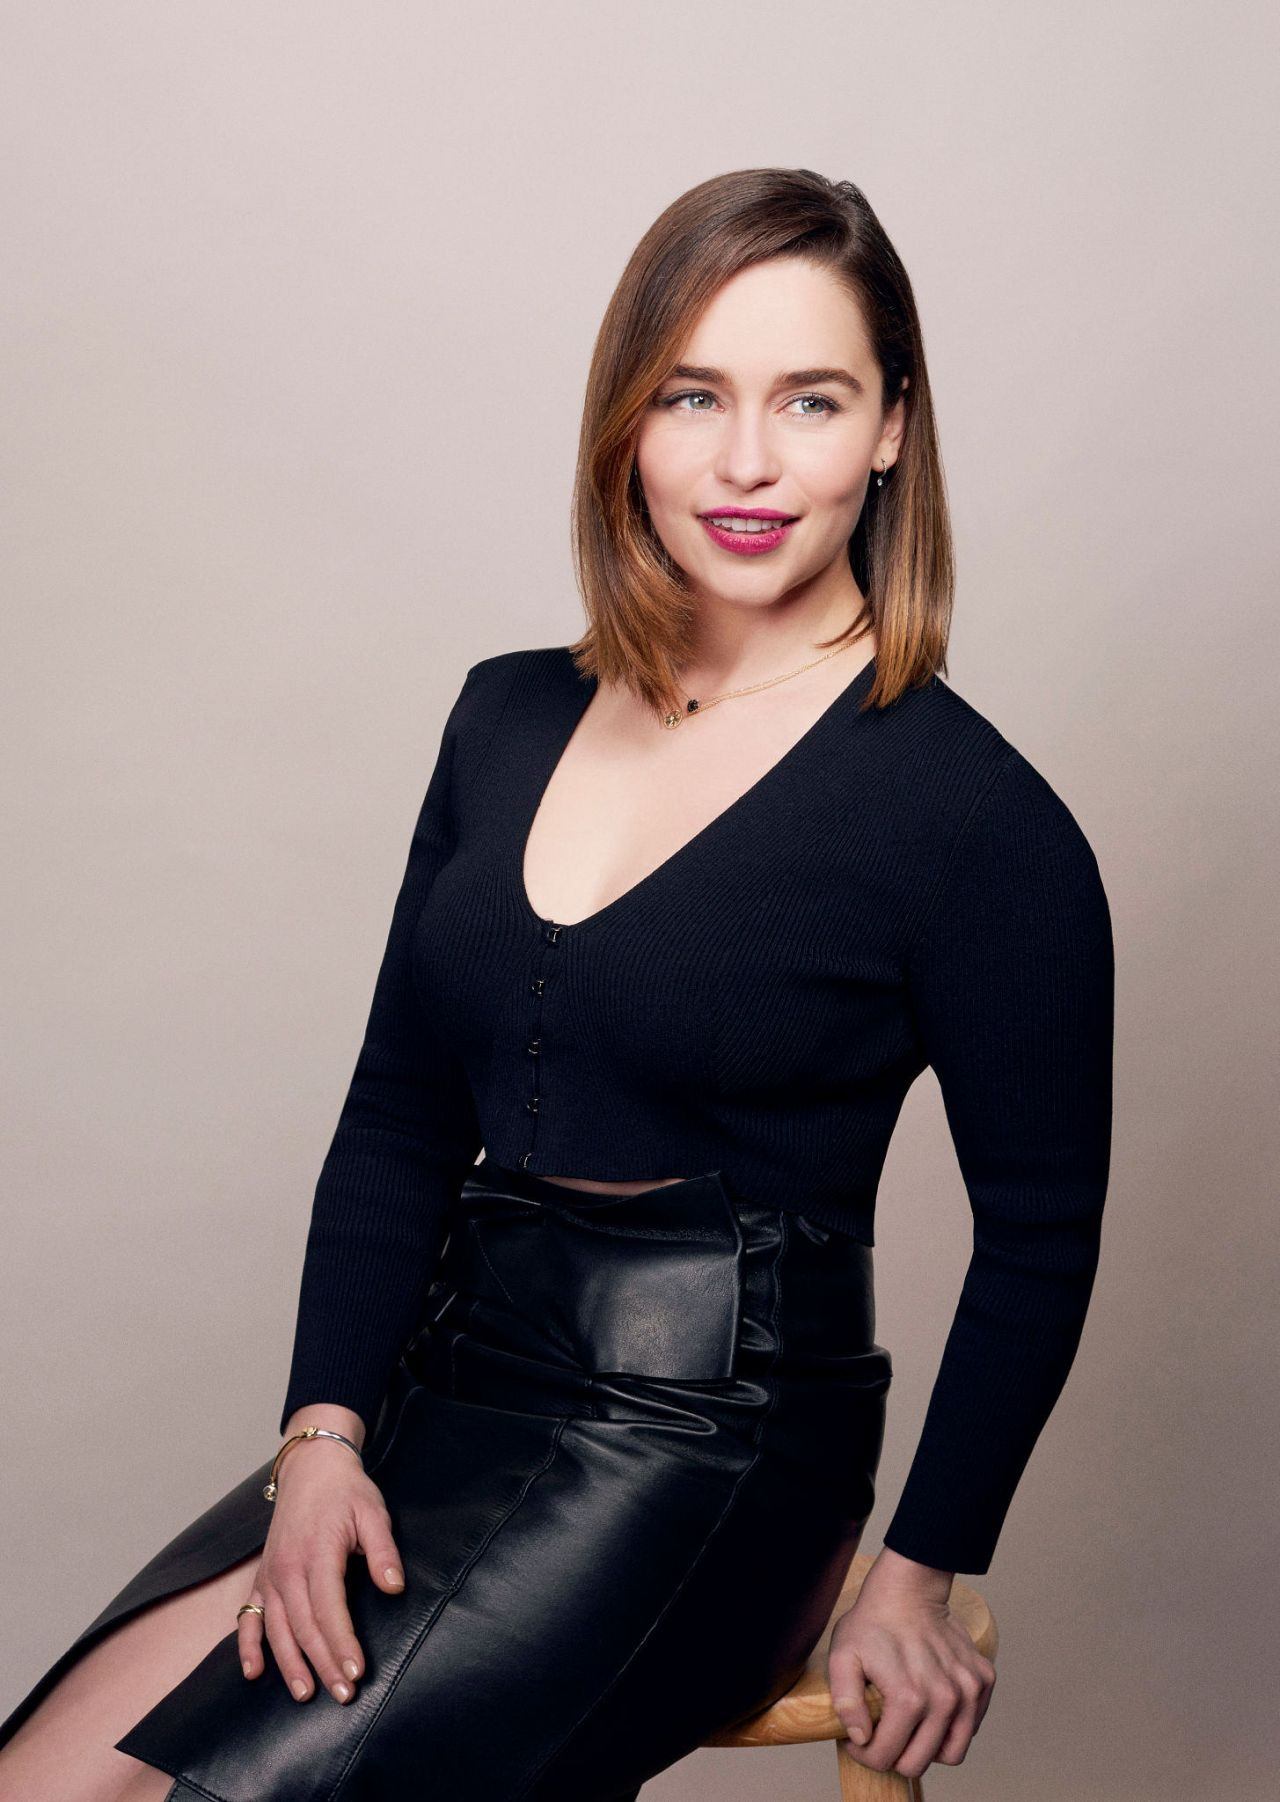 Emilia Clarke Bafta Awards Season Tea Party Portraits